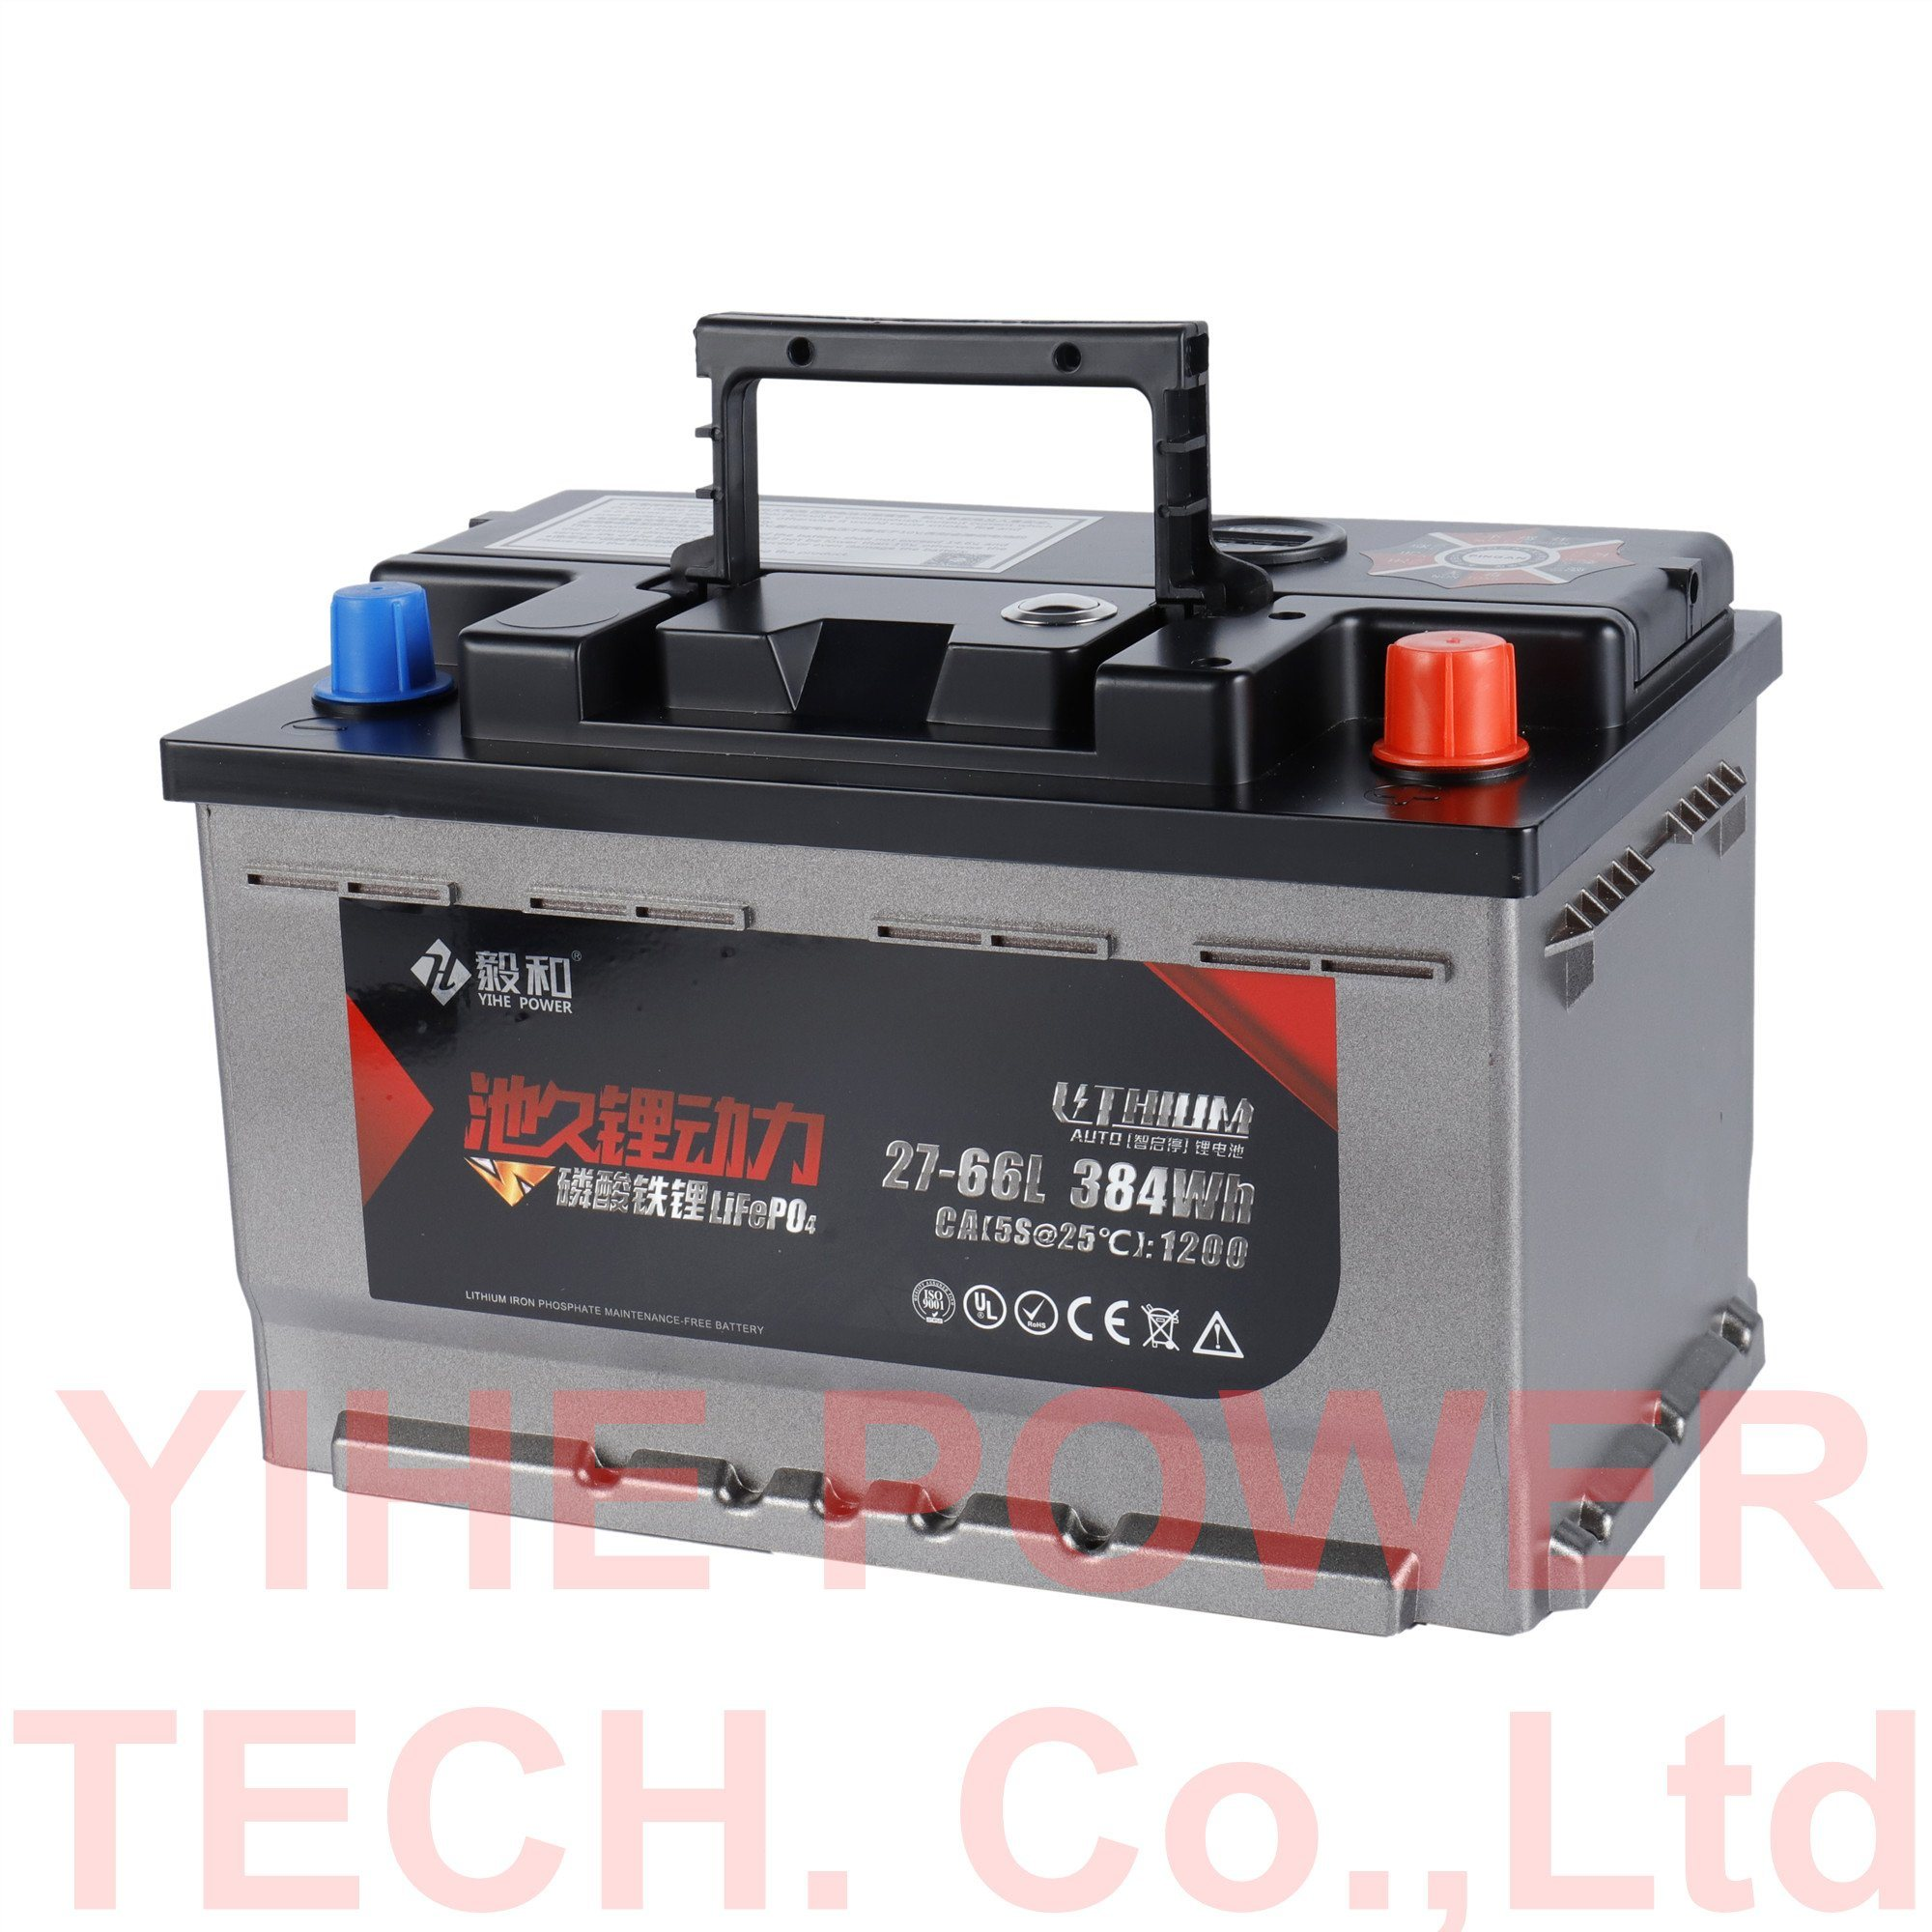 Lithium Car Battery >> Hot Item 12v Lithium Car Start Stop Battery 66ah 27 66